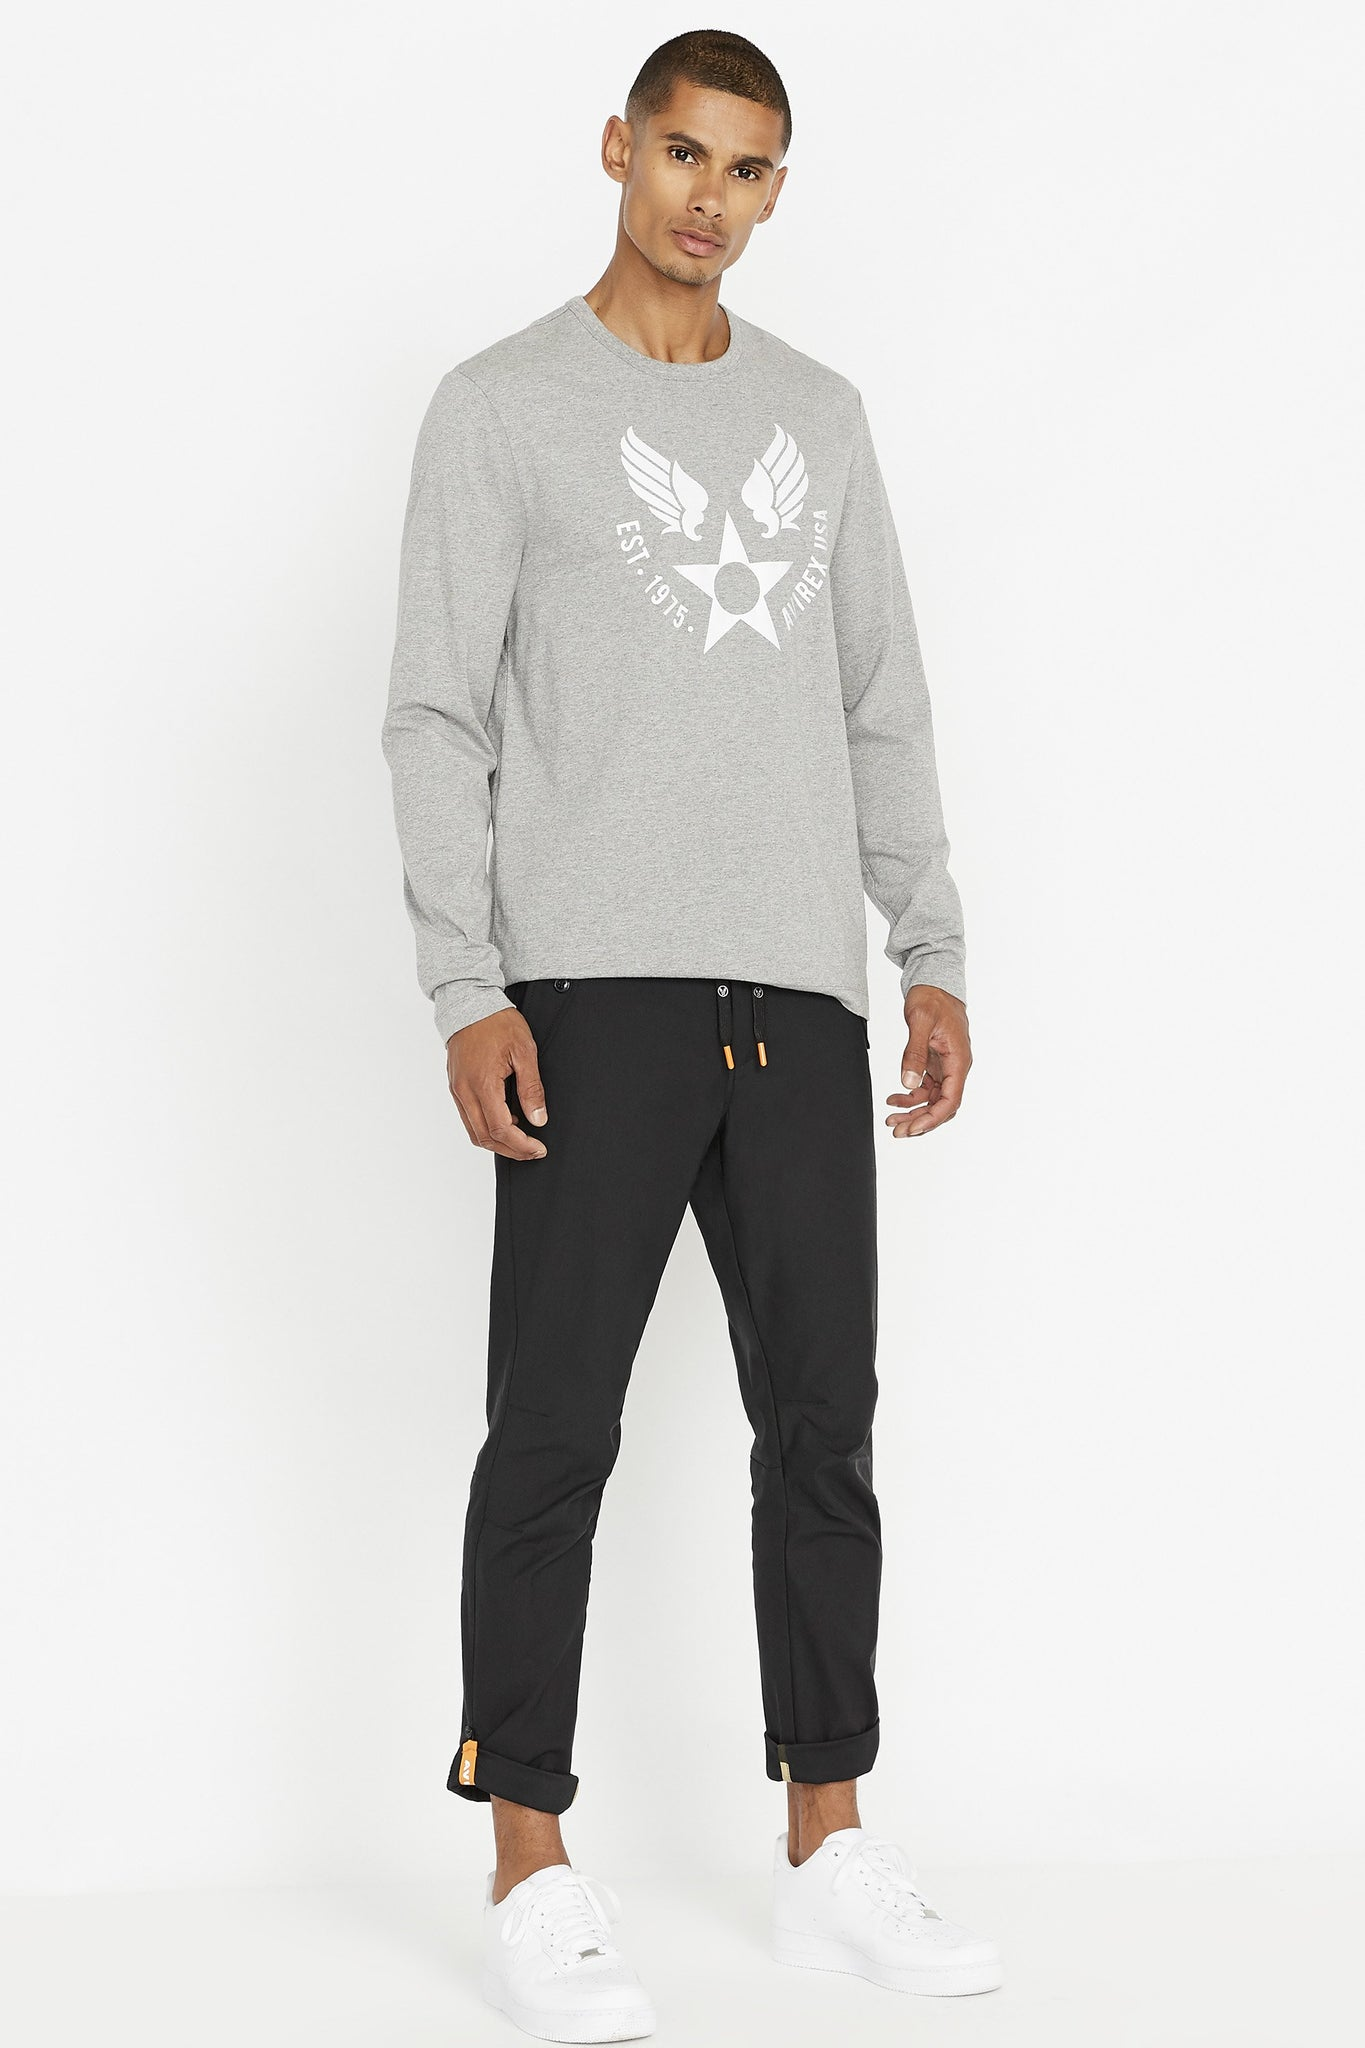 Full view of Men wearing a light grey long sleeve crew neck T-shirt with round logo graphic print on chest and black pants